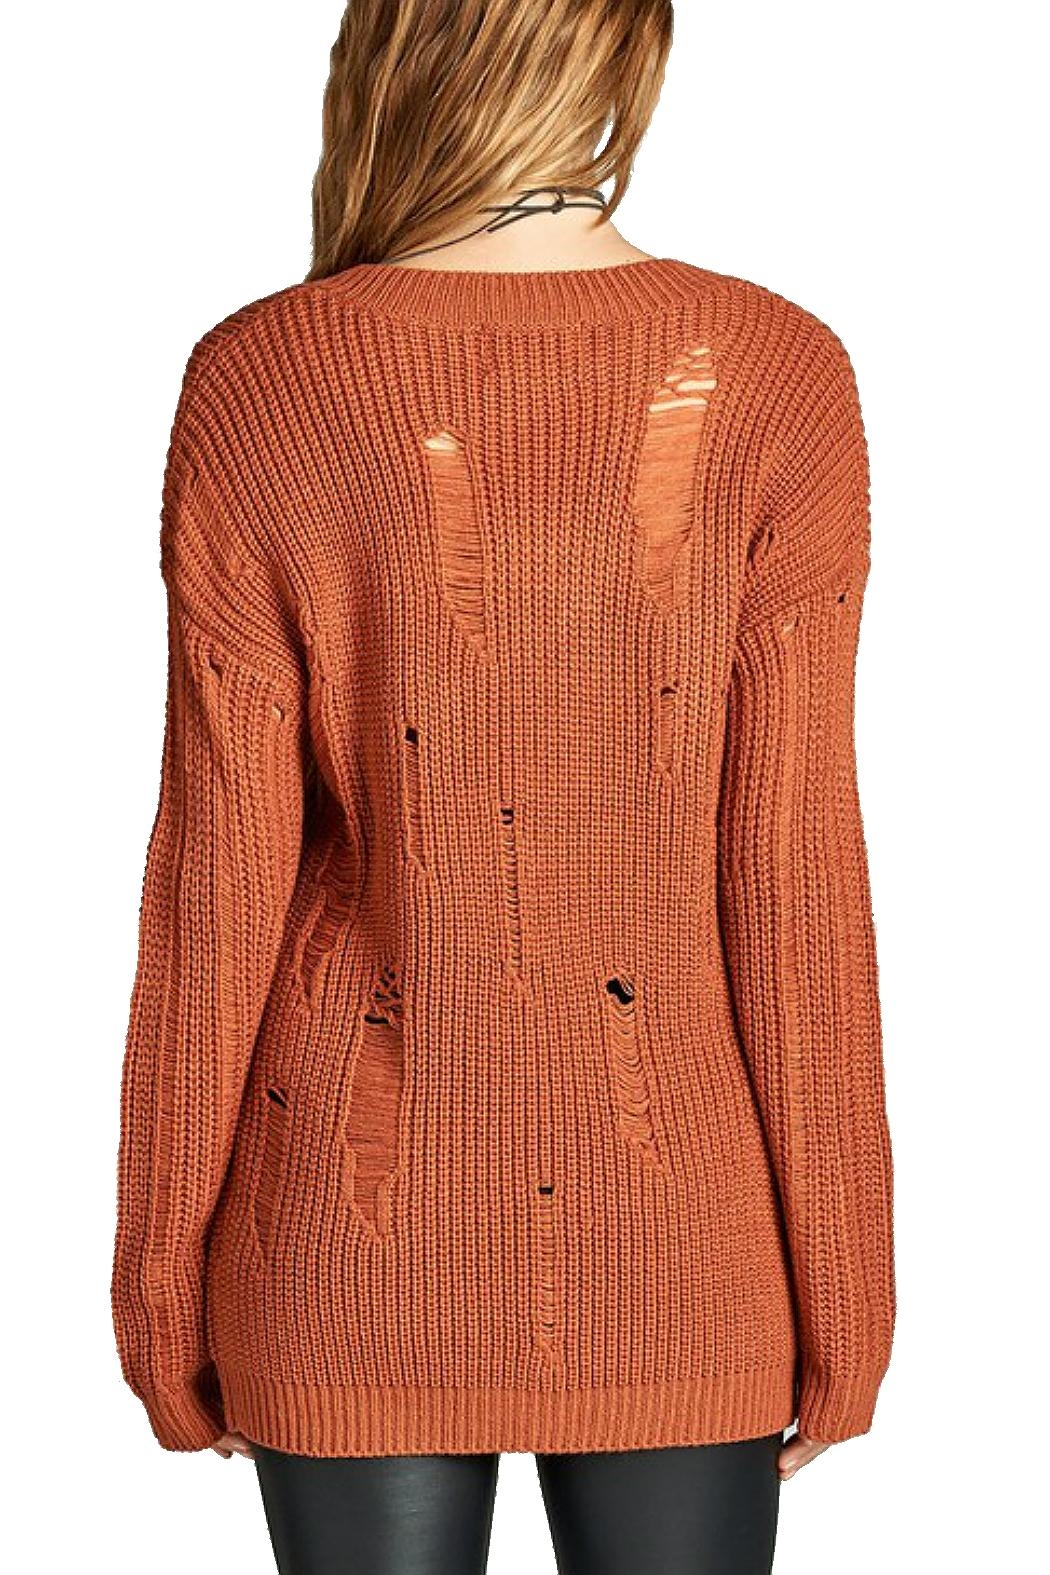 Minx Oversized Knit Sweater from California by MINX — Shoptiques